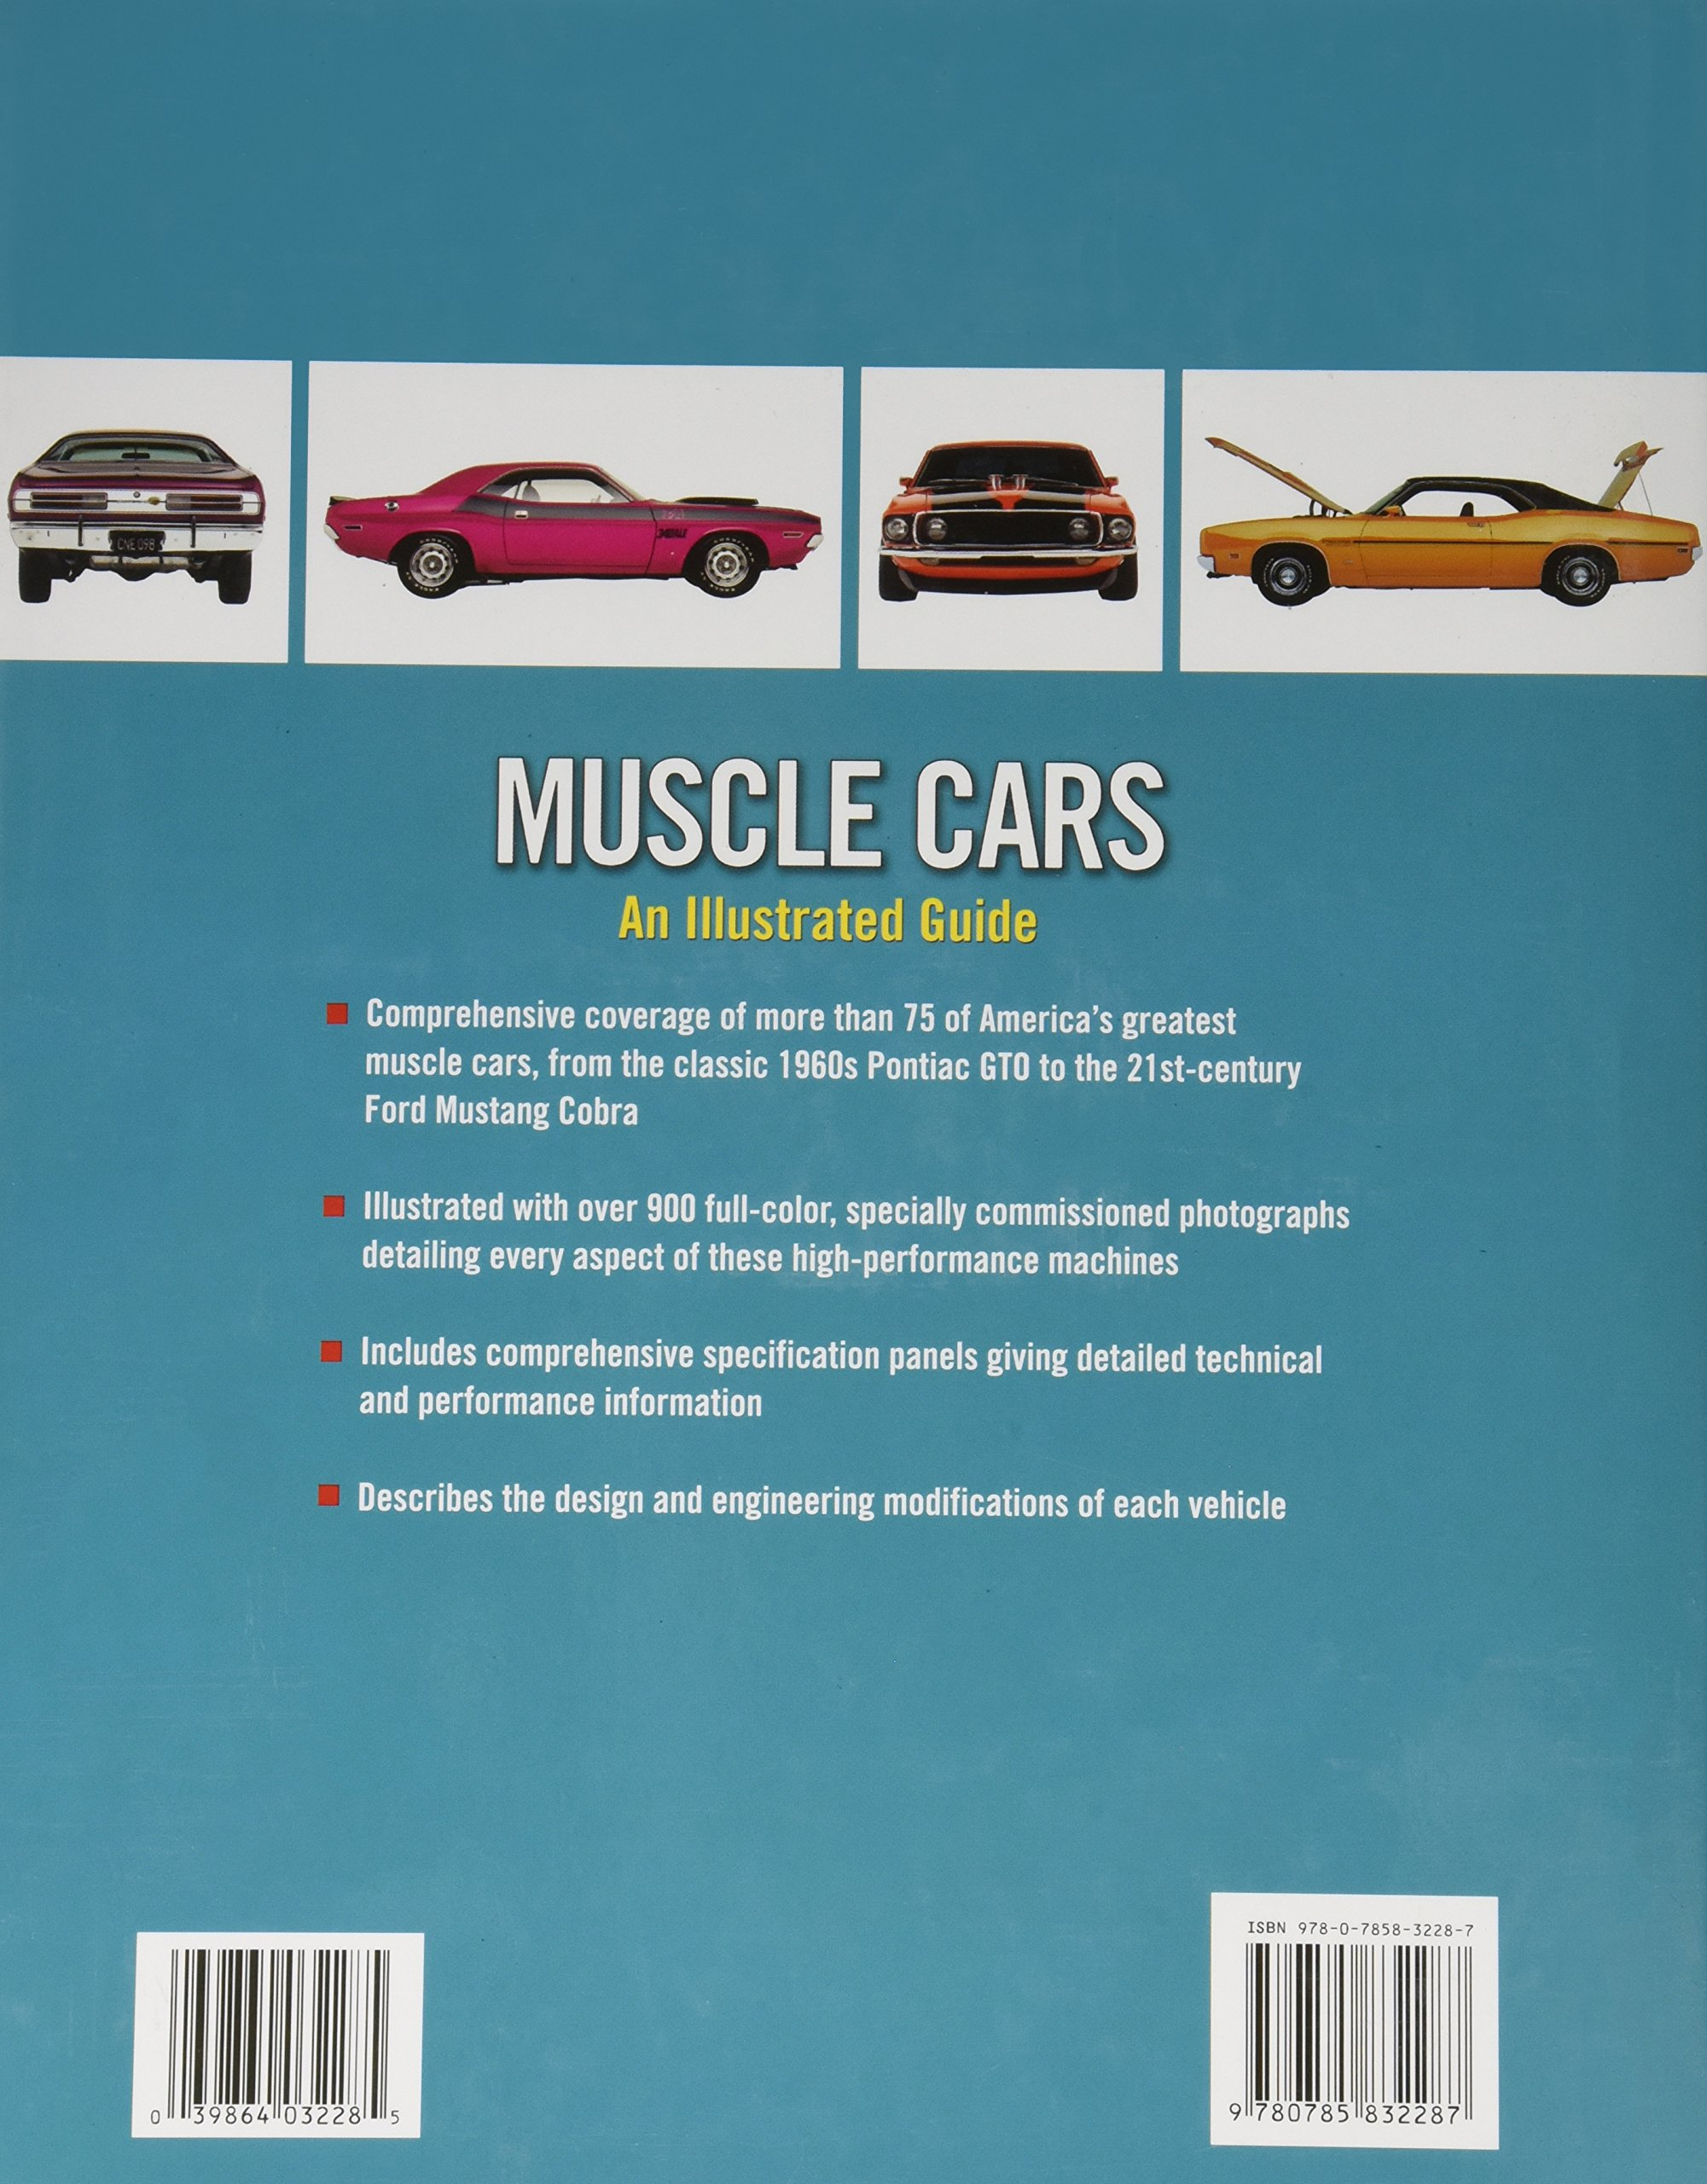 Muscle Cars An Illustrated Guide Craig Cheetham - Famous movie cars beautifully illustrated